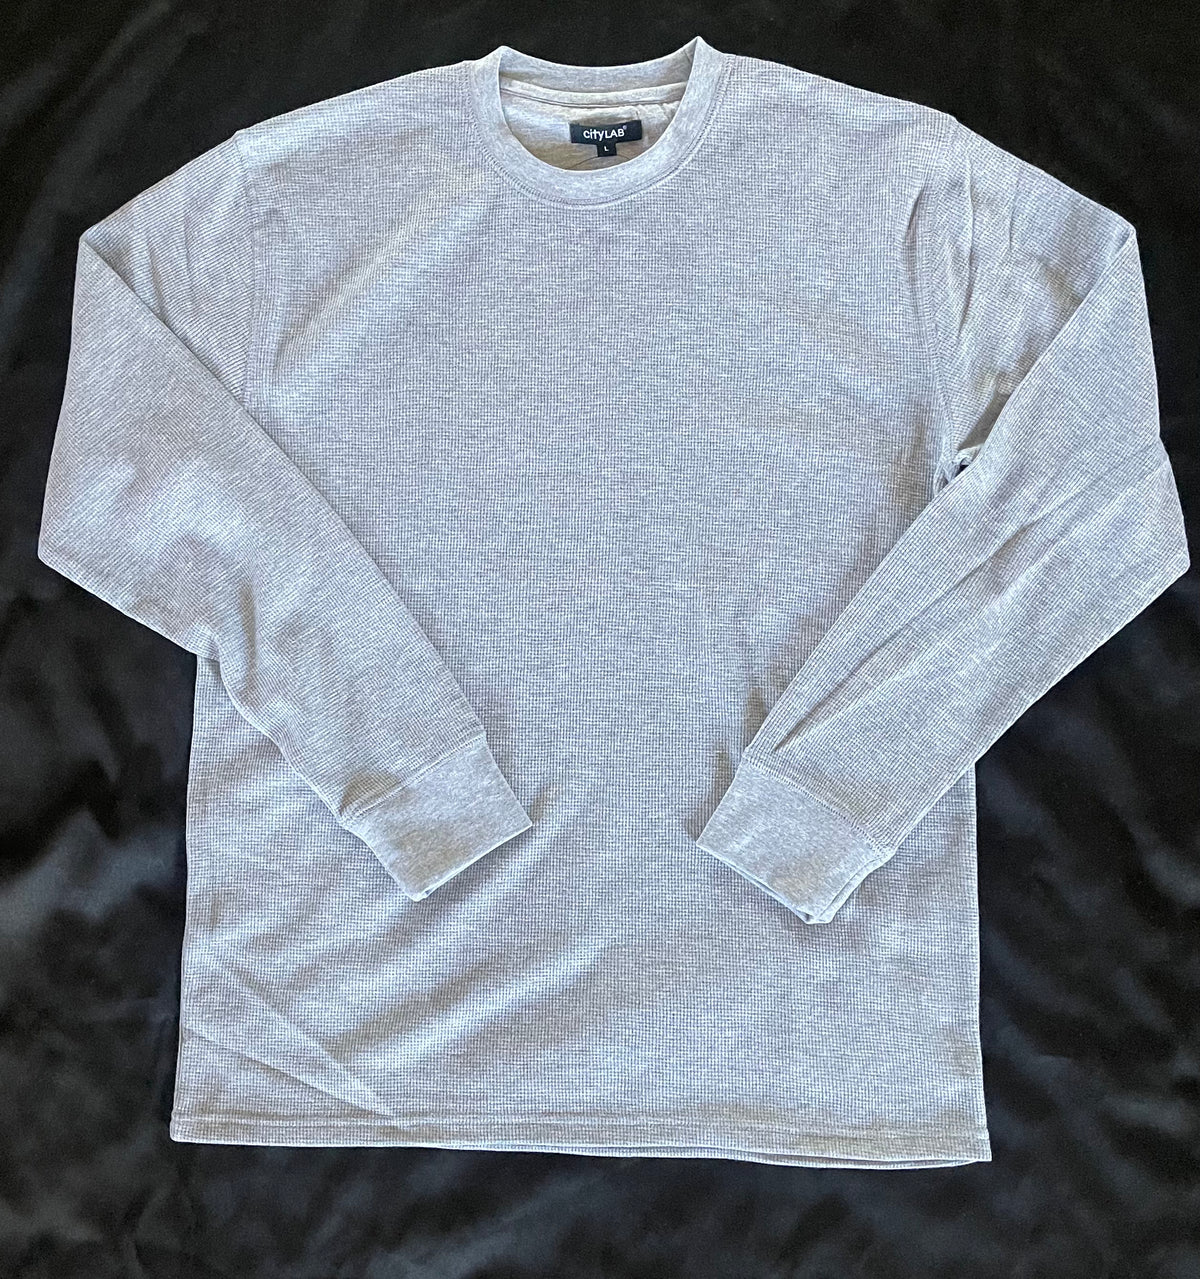 CITY LAB - CLASSIC Thermal Shirt - GREY - NOT IN PACKAGING